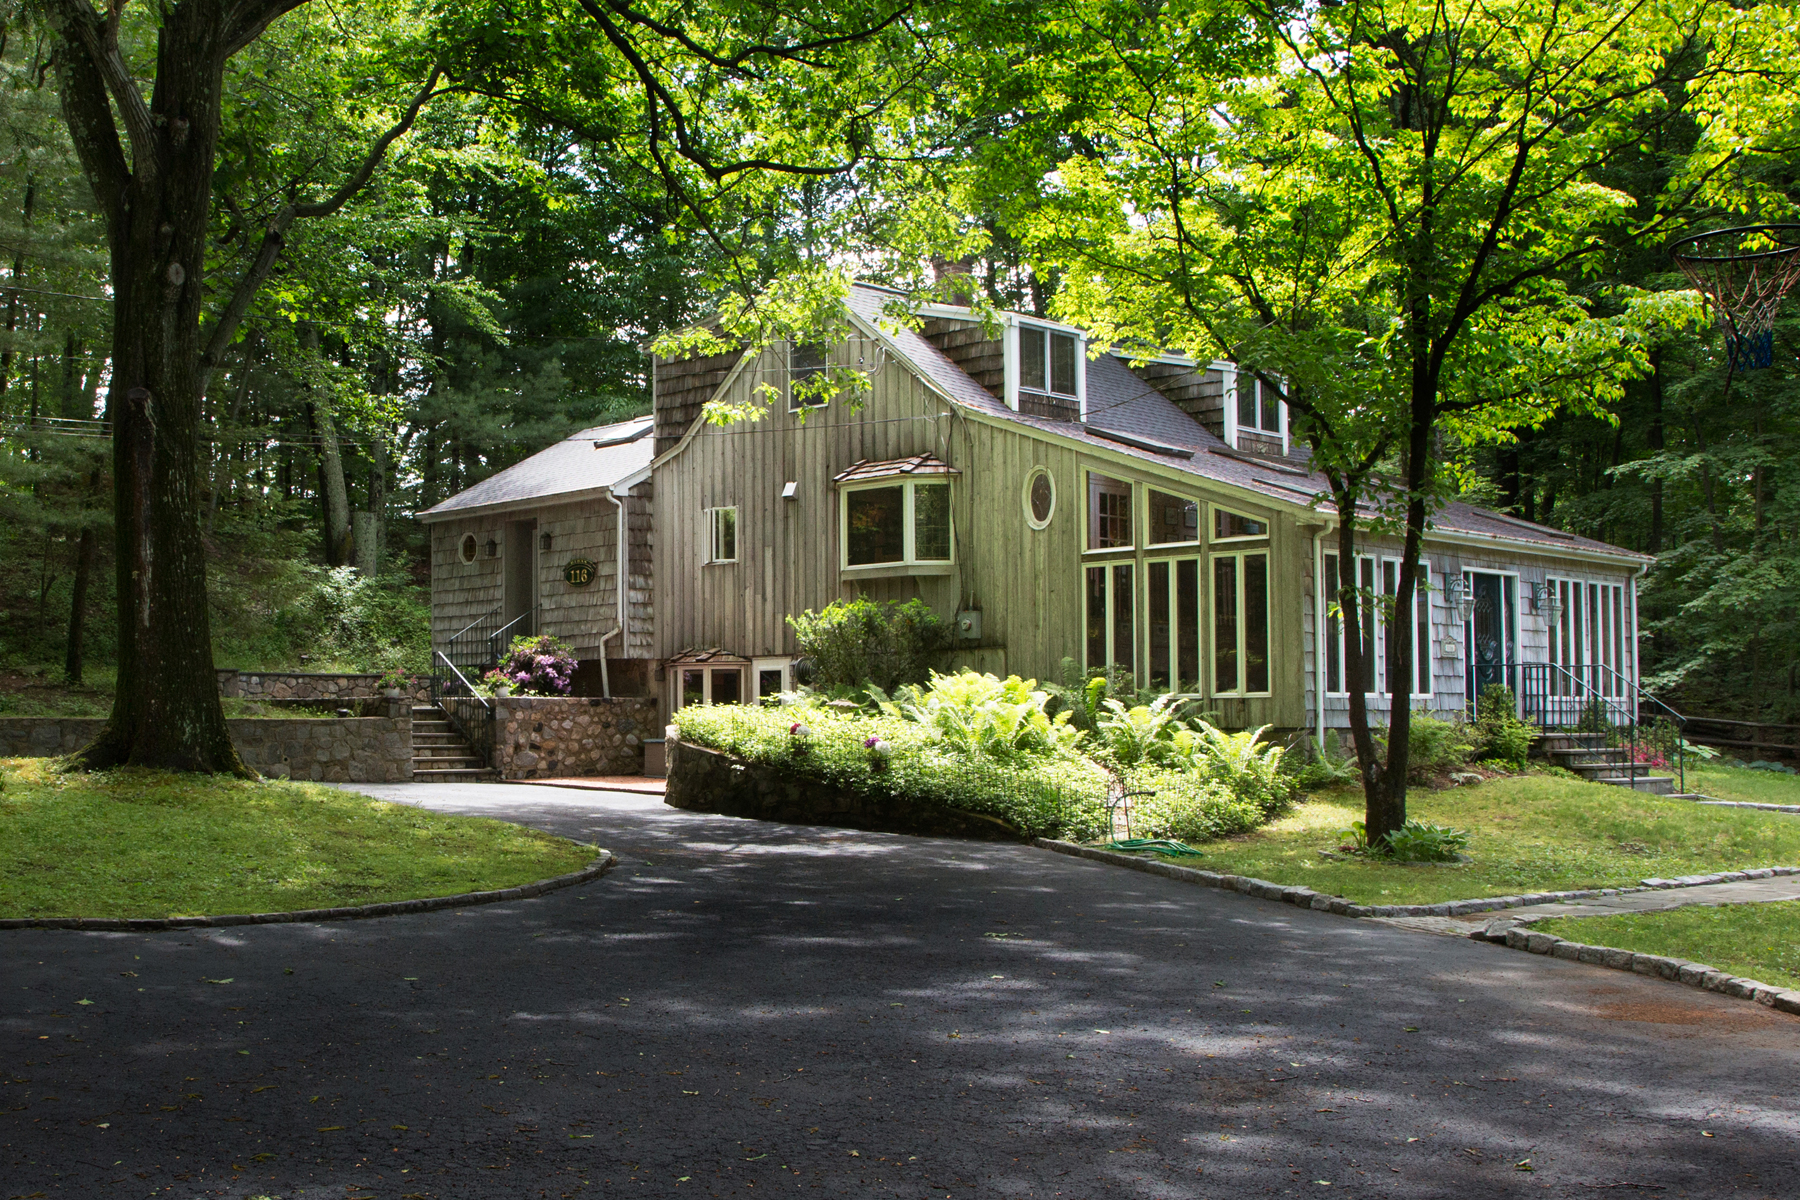 Single Family Home for Sale at Adirondack-Style Contemporary Cape 116 Weed Street New Canaan, Connecticut 06840 United States